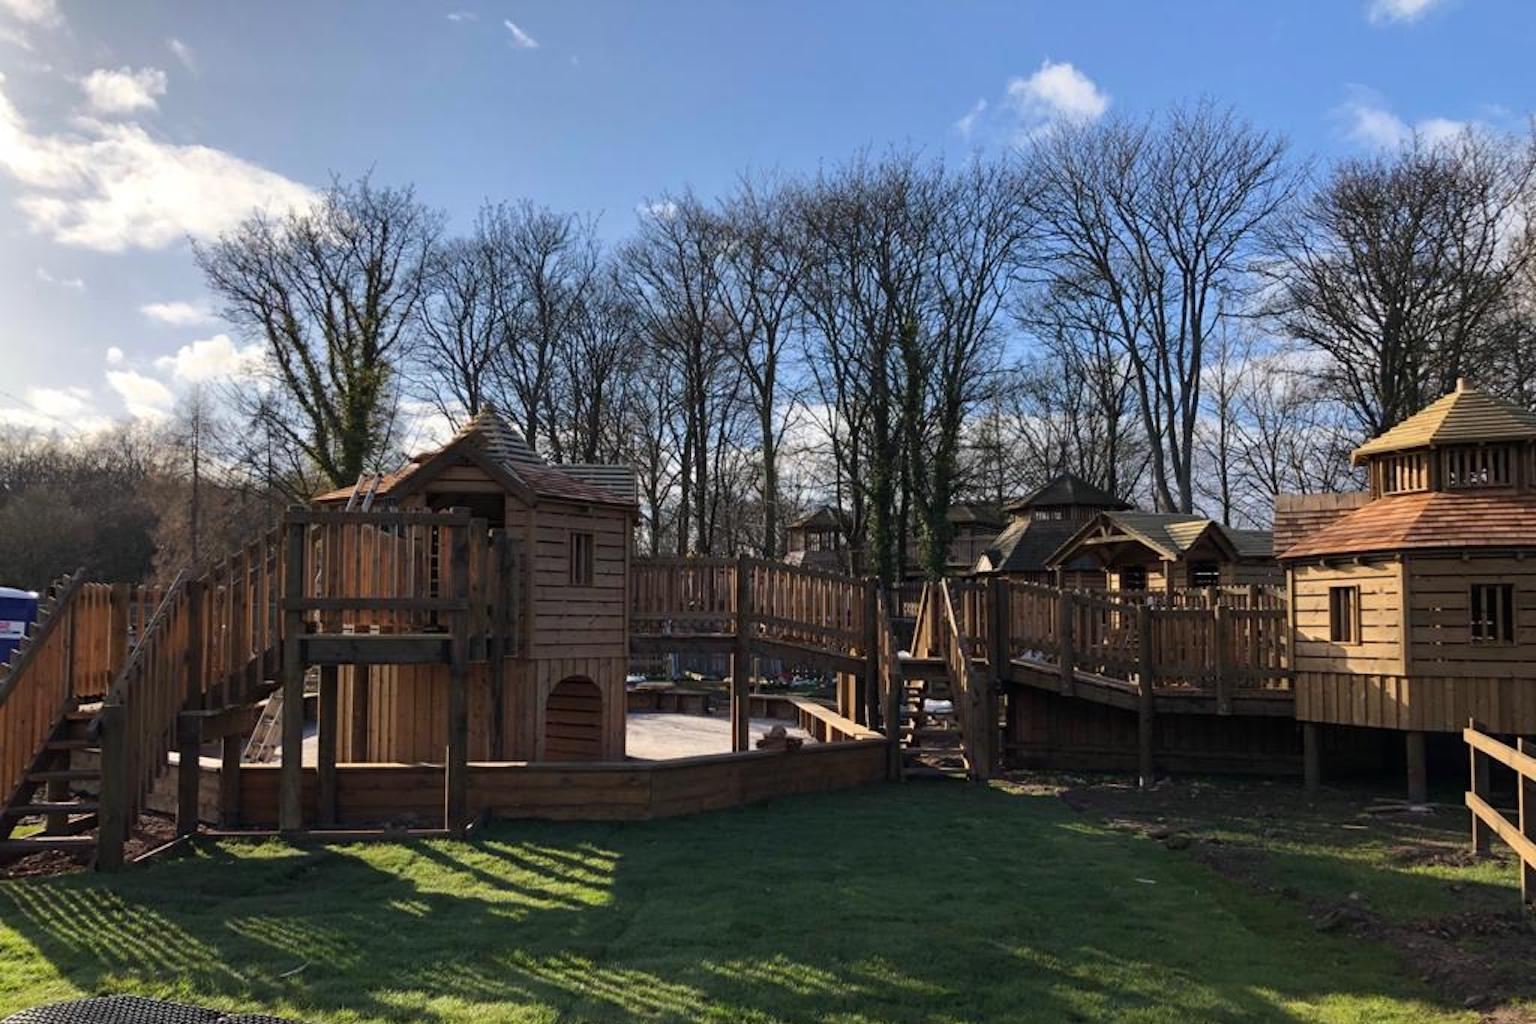 lead CAPCo Dalkeith Fort Douglas Mini Maze toddler play